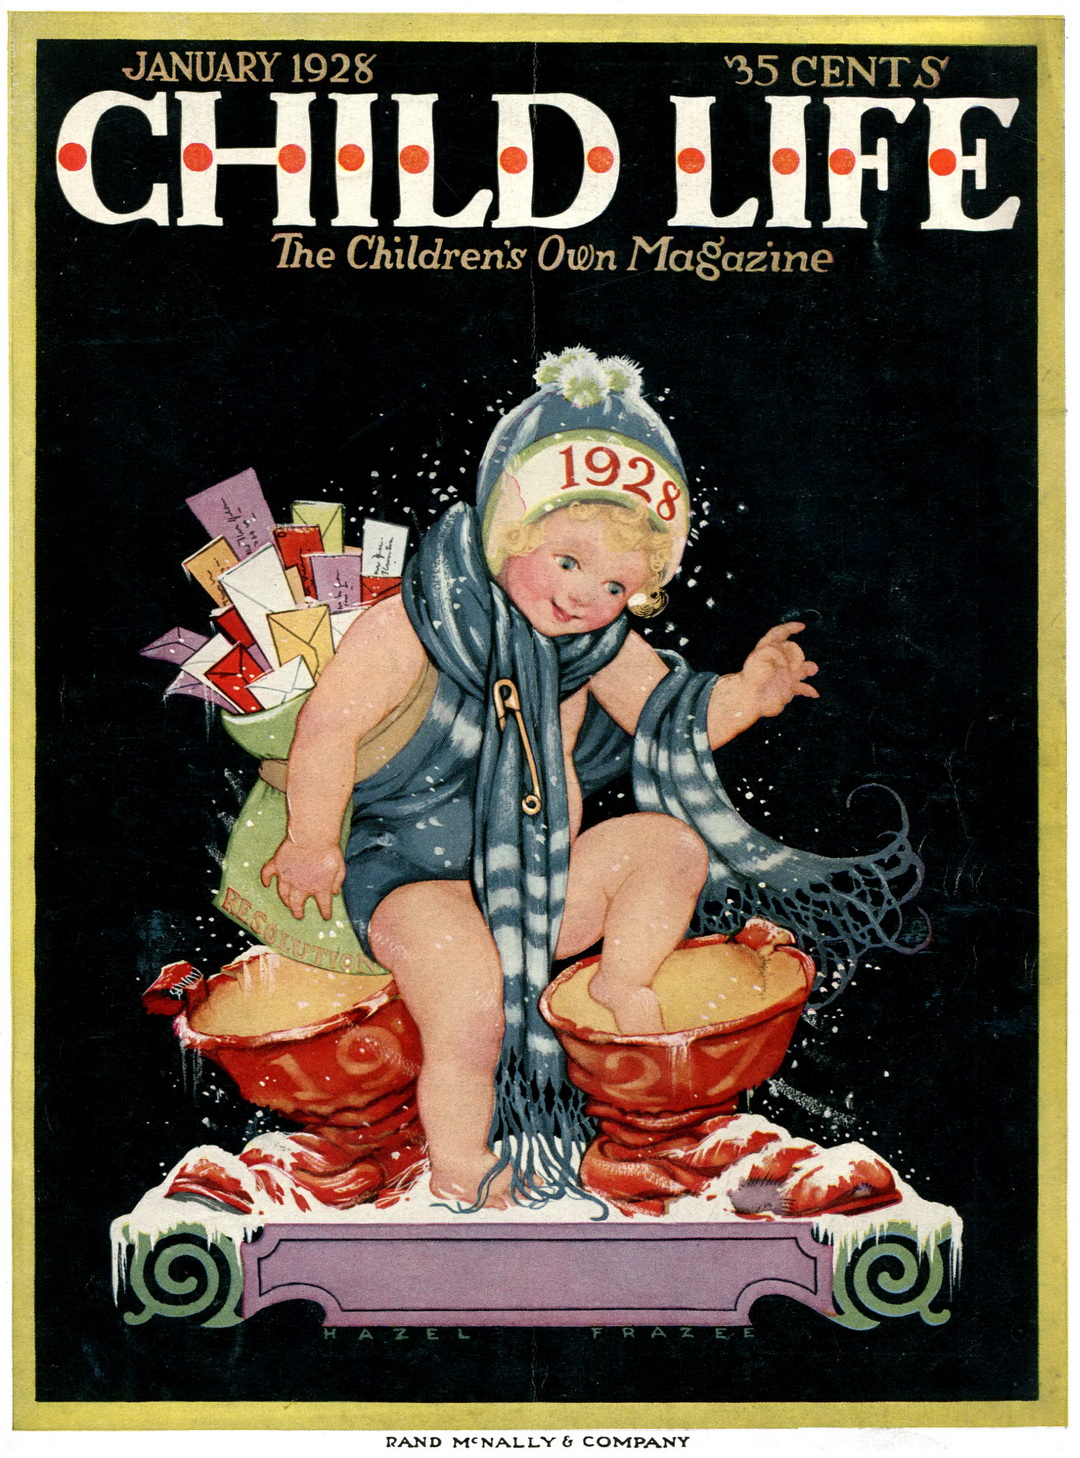 Child Life #1 - Cover (Jan 1928)